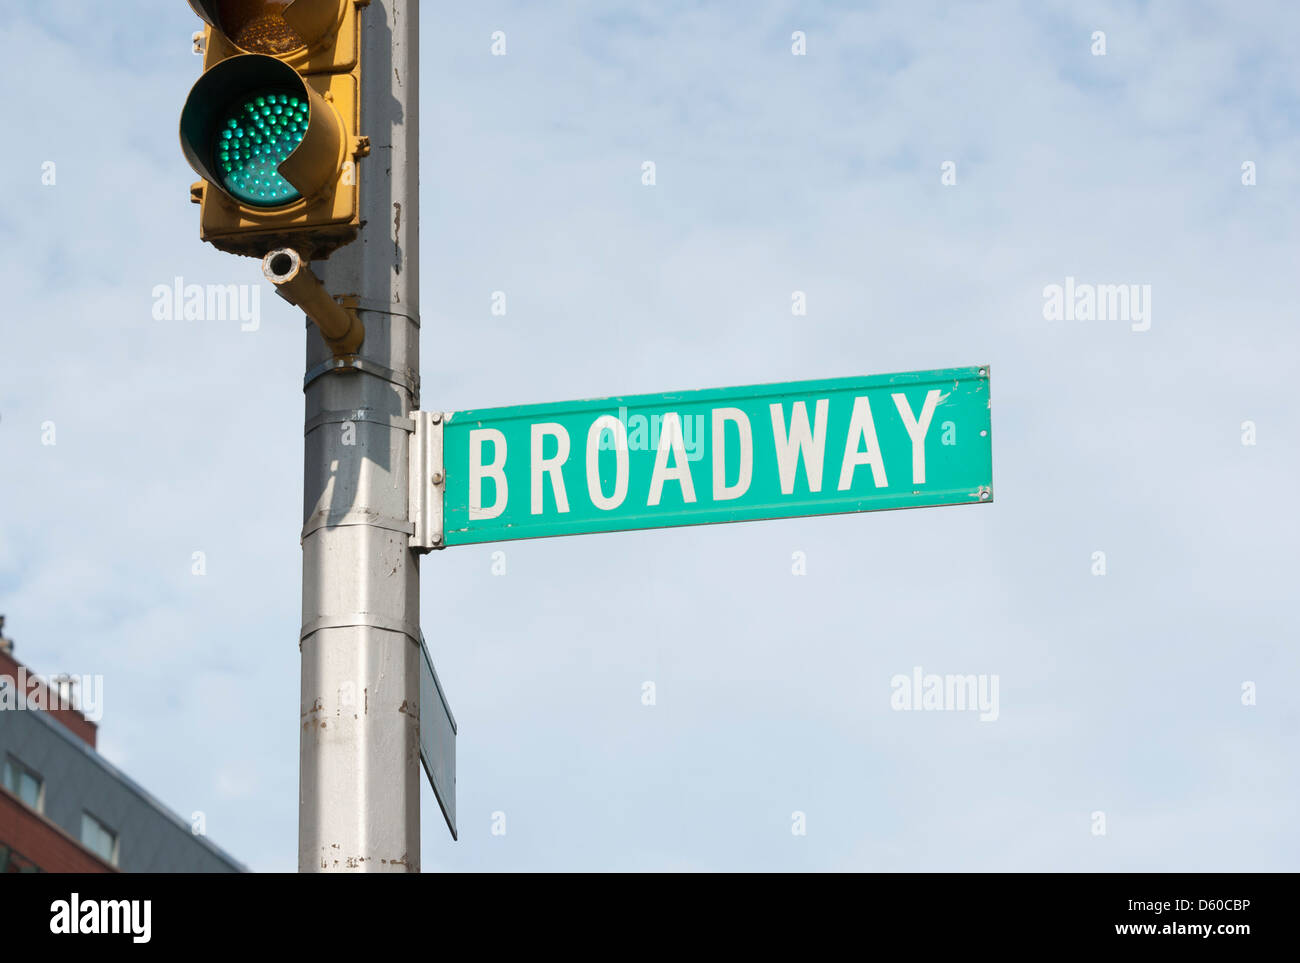 Broadway, street sign with green traffic light in New York City, New York, USA, North America - Image taken from - Stock Image